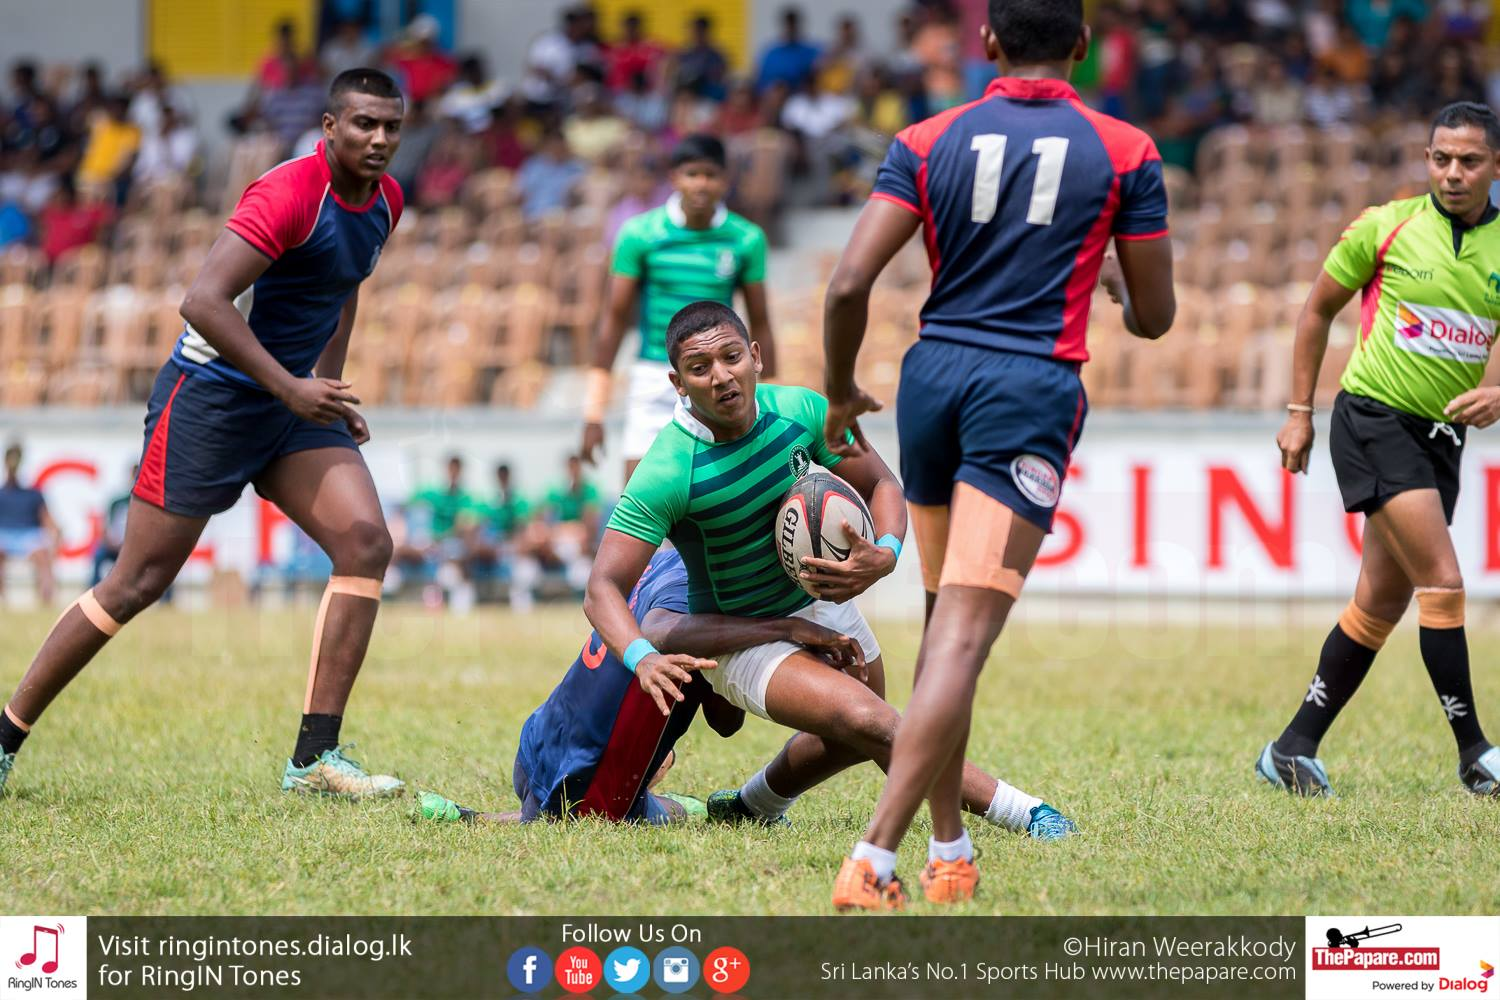 No Surprises on the Day 1 of School 7's